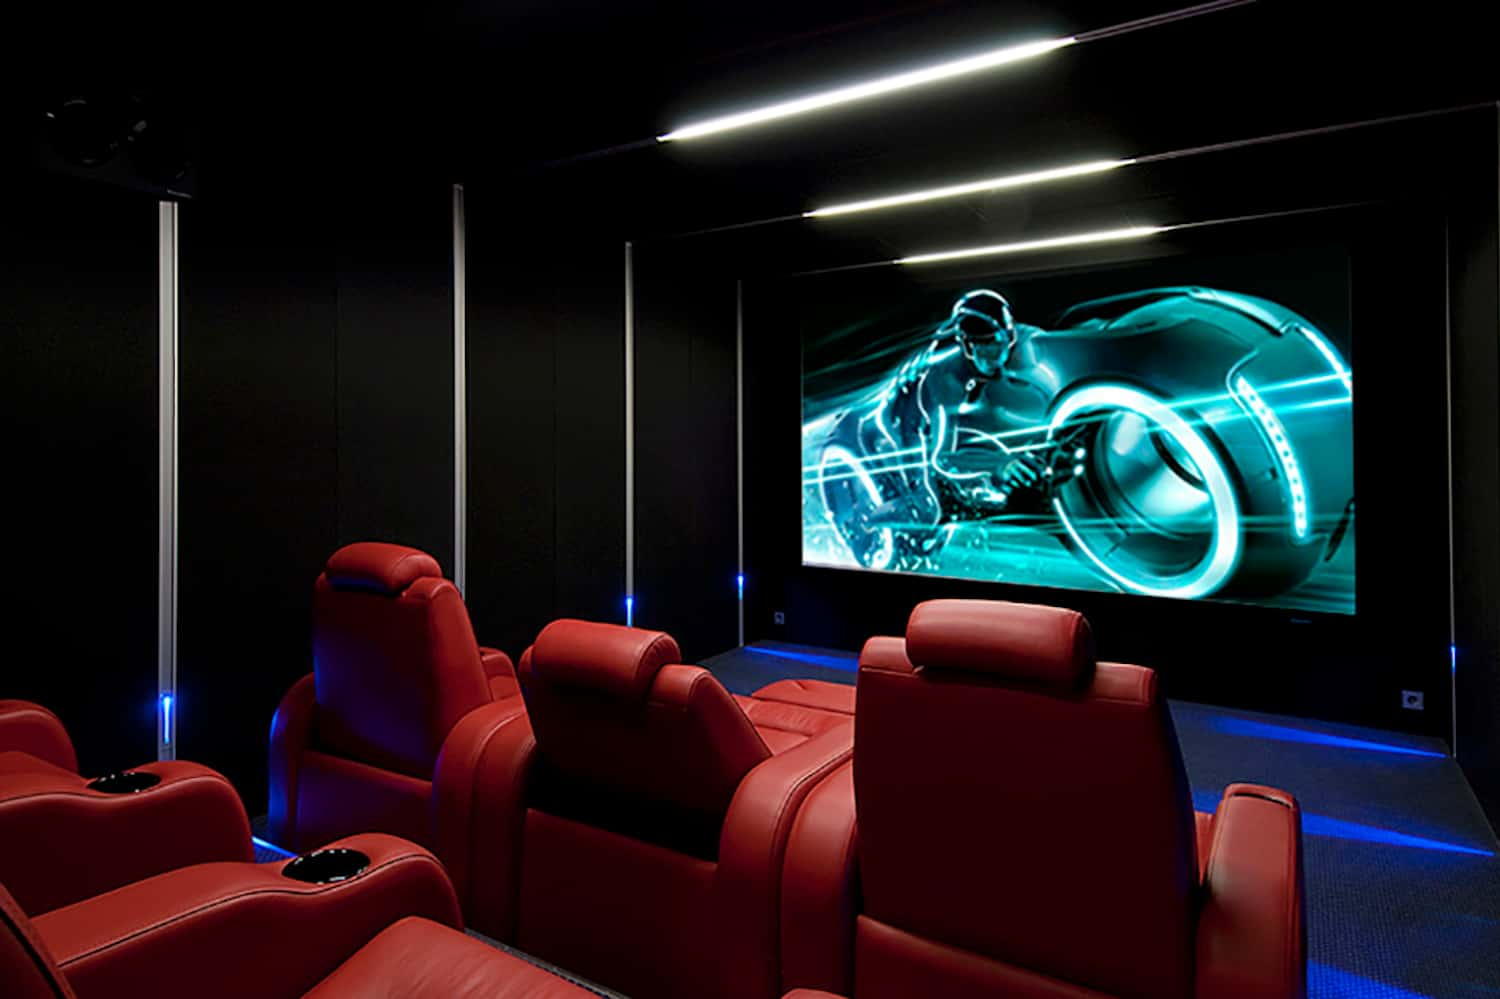 home theatre seating ideas image of red chaise chairs